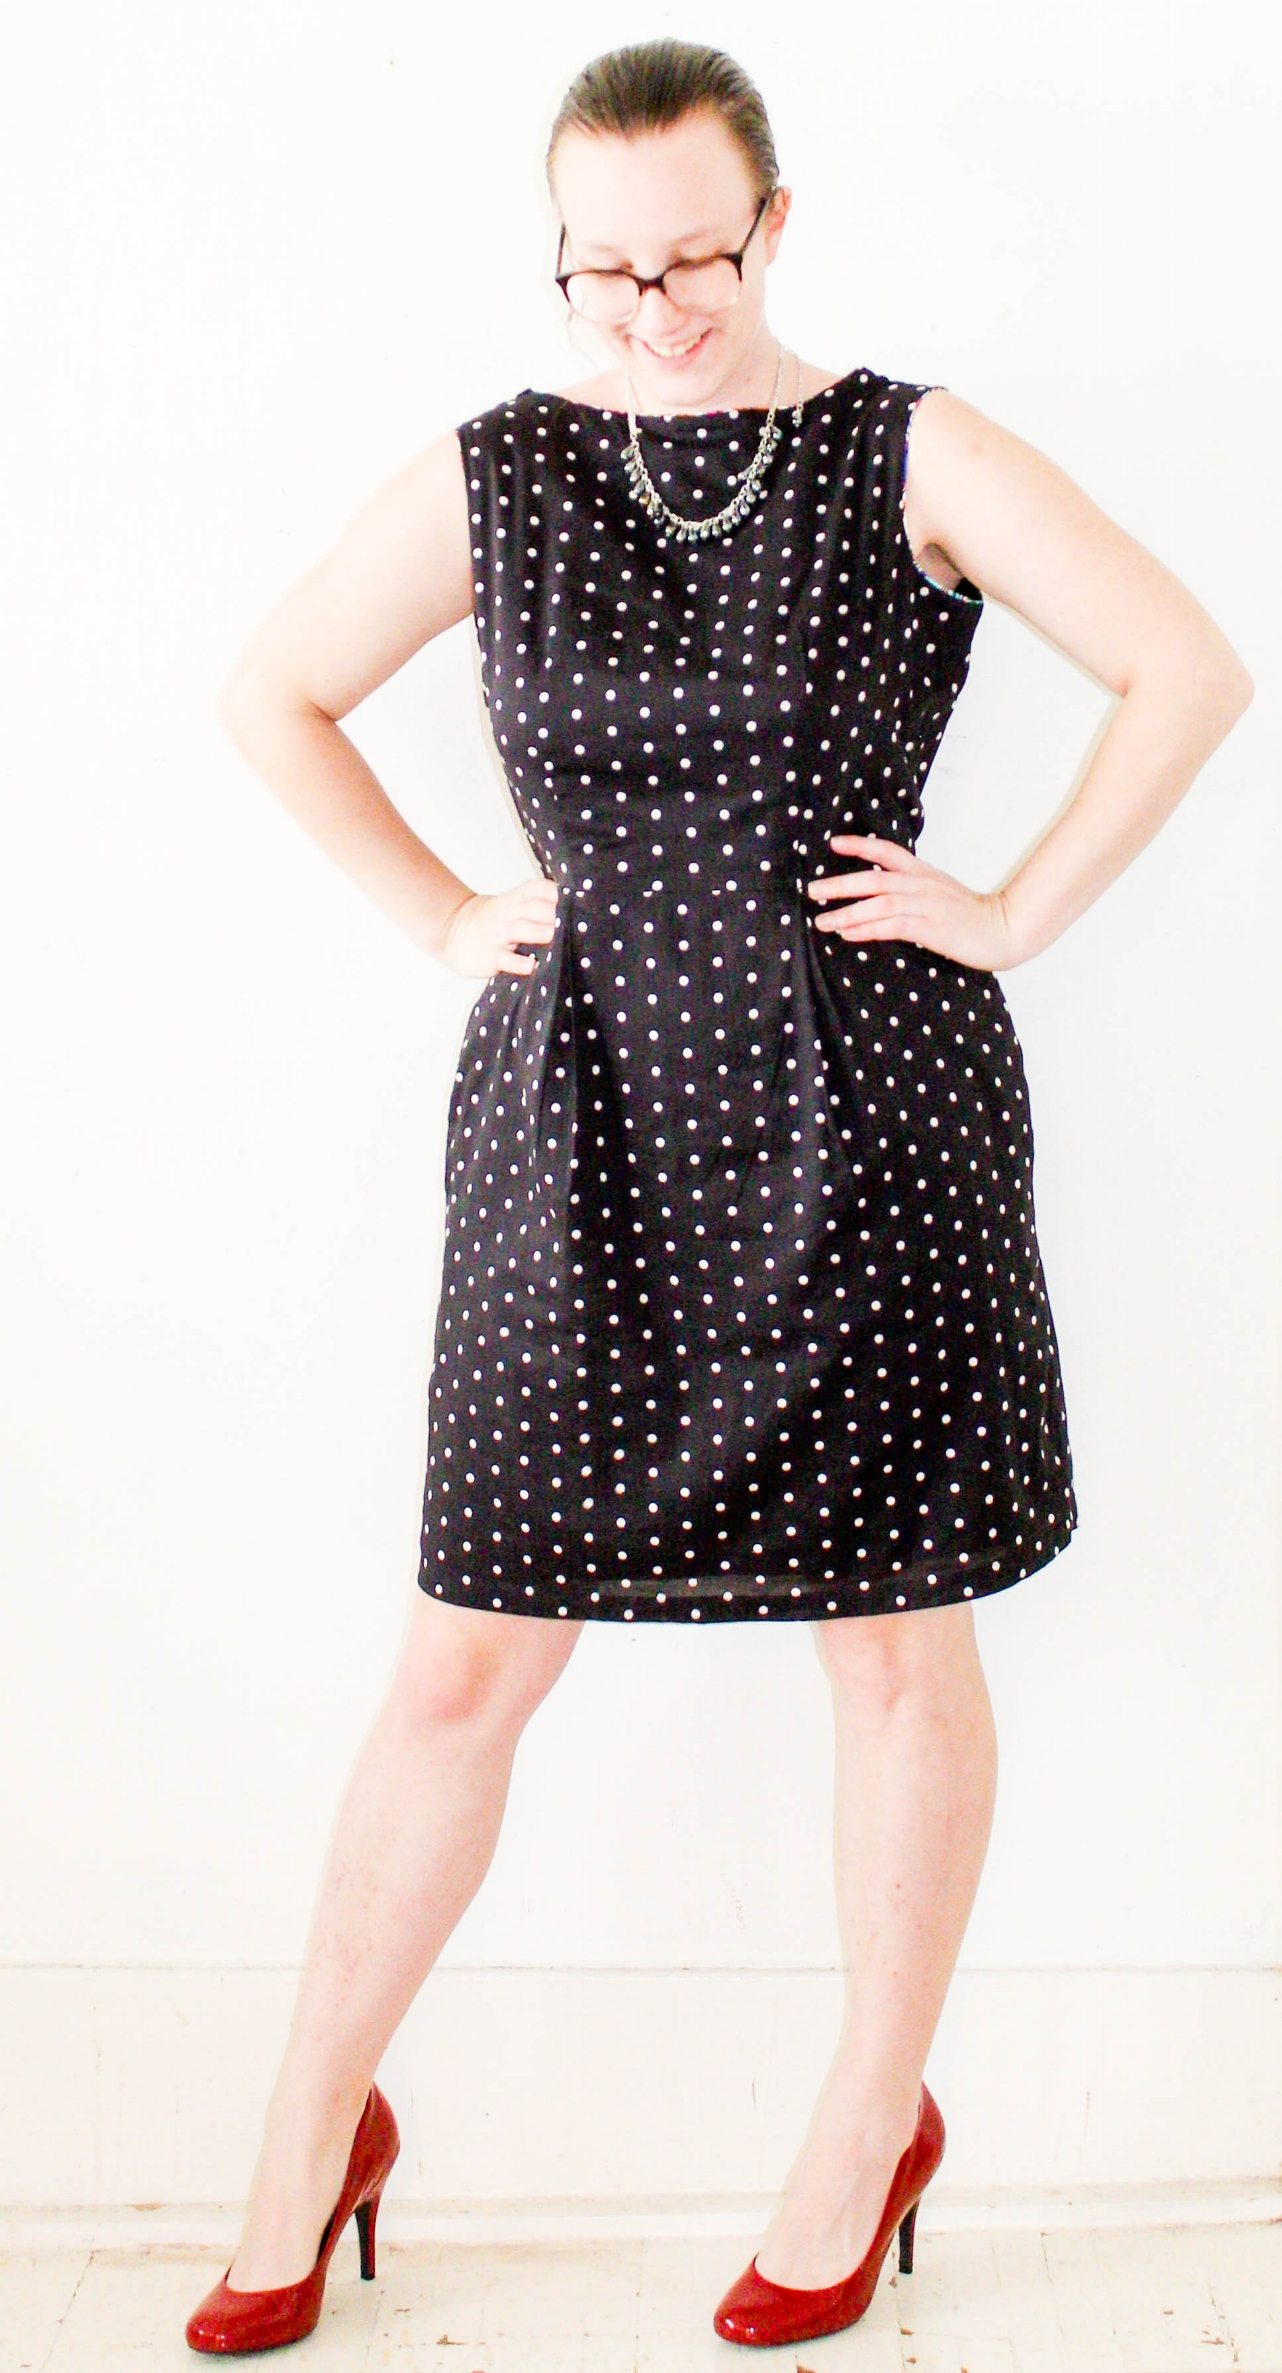 Affordable Ethical Fashion